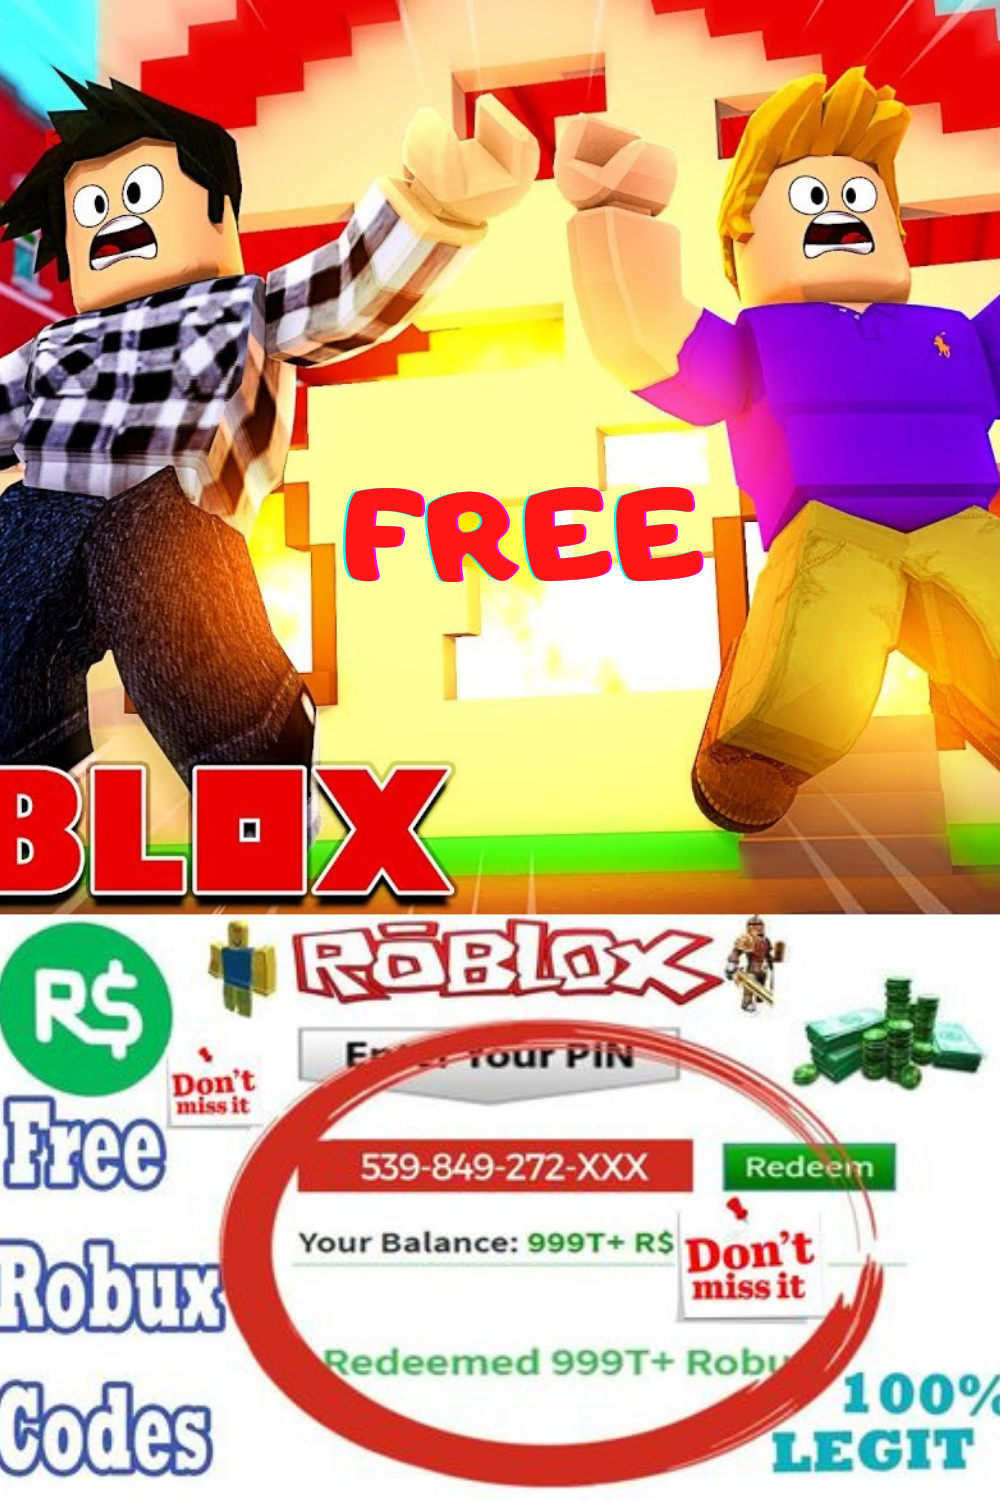 Robux Cheats Hack Free Robux 2020 In 2020 Roblox Roblox Gifts Free